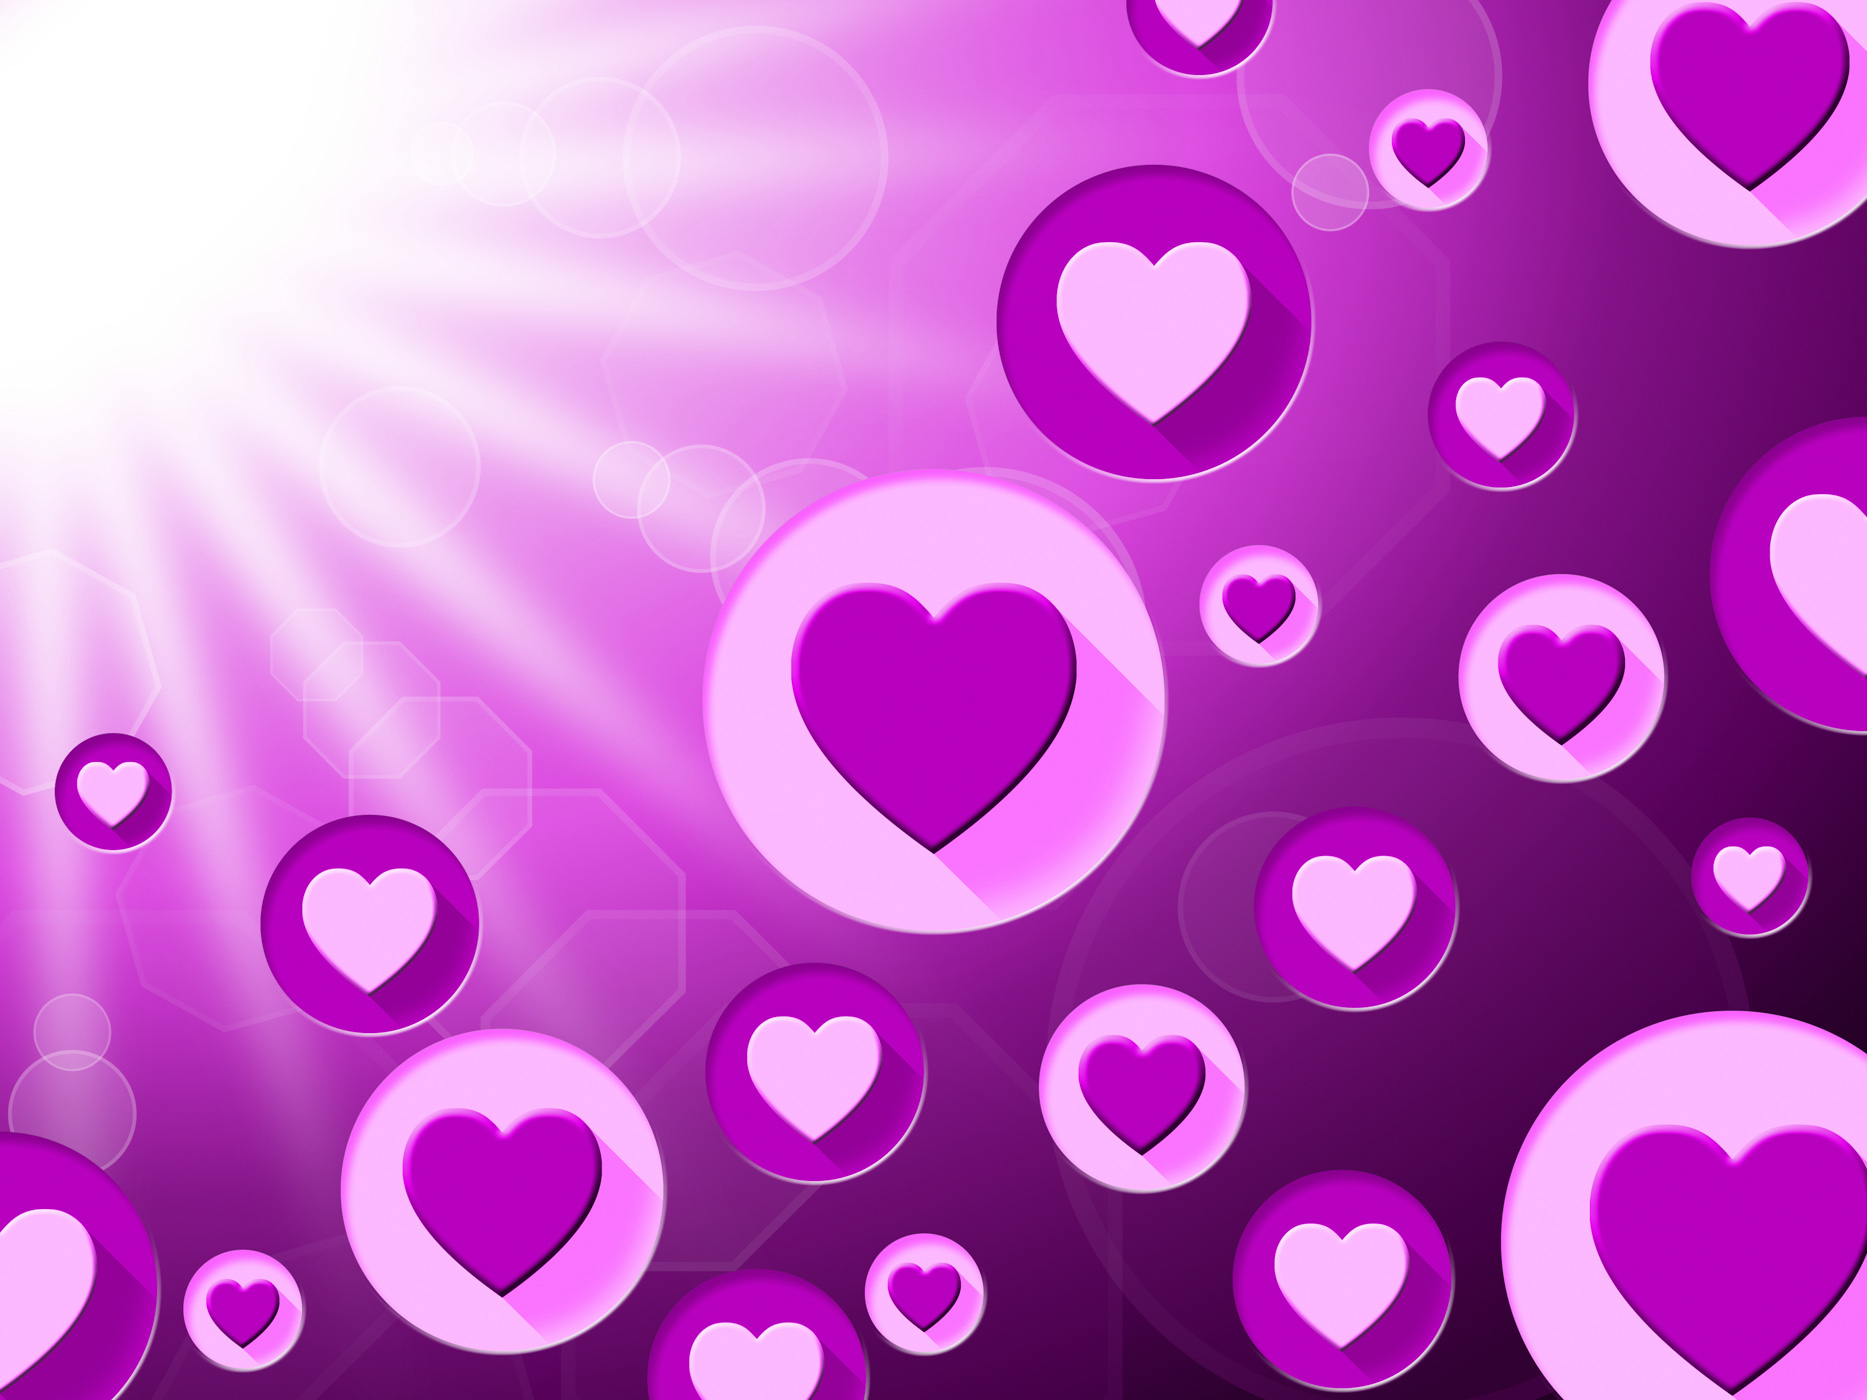 Copyspace background represents valentine day and affection photo